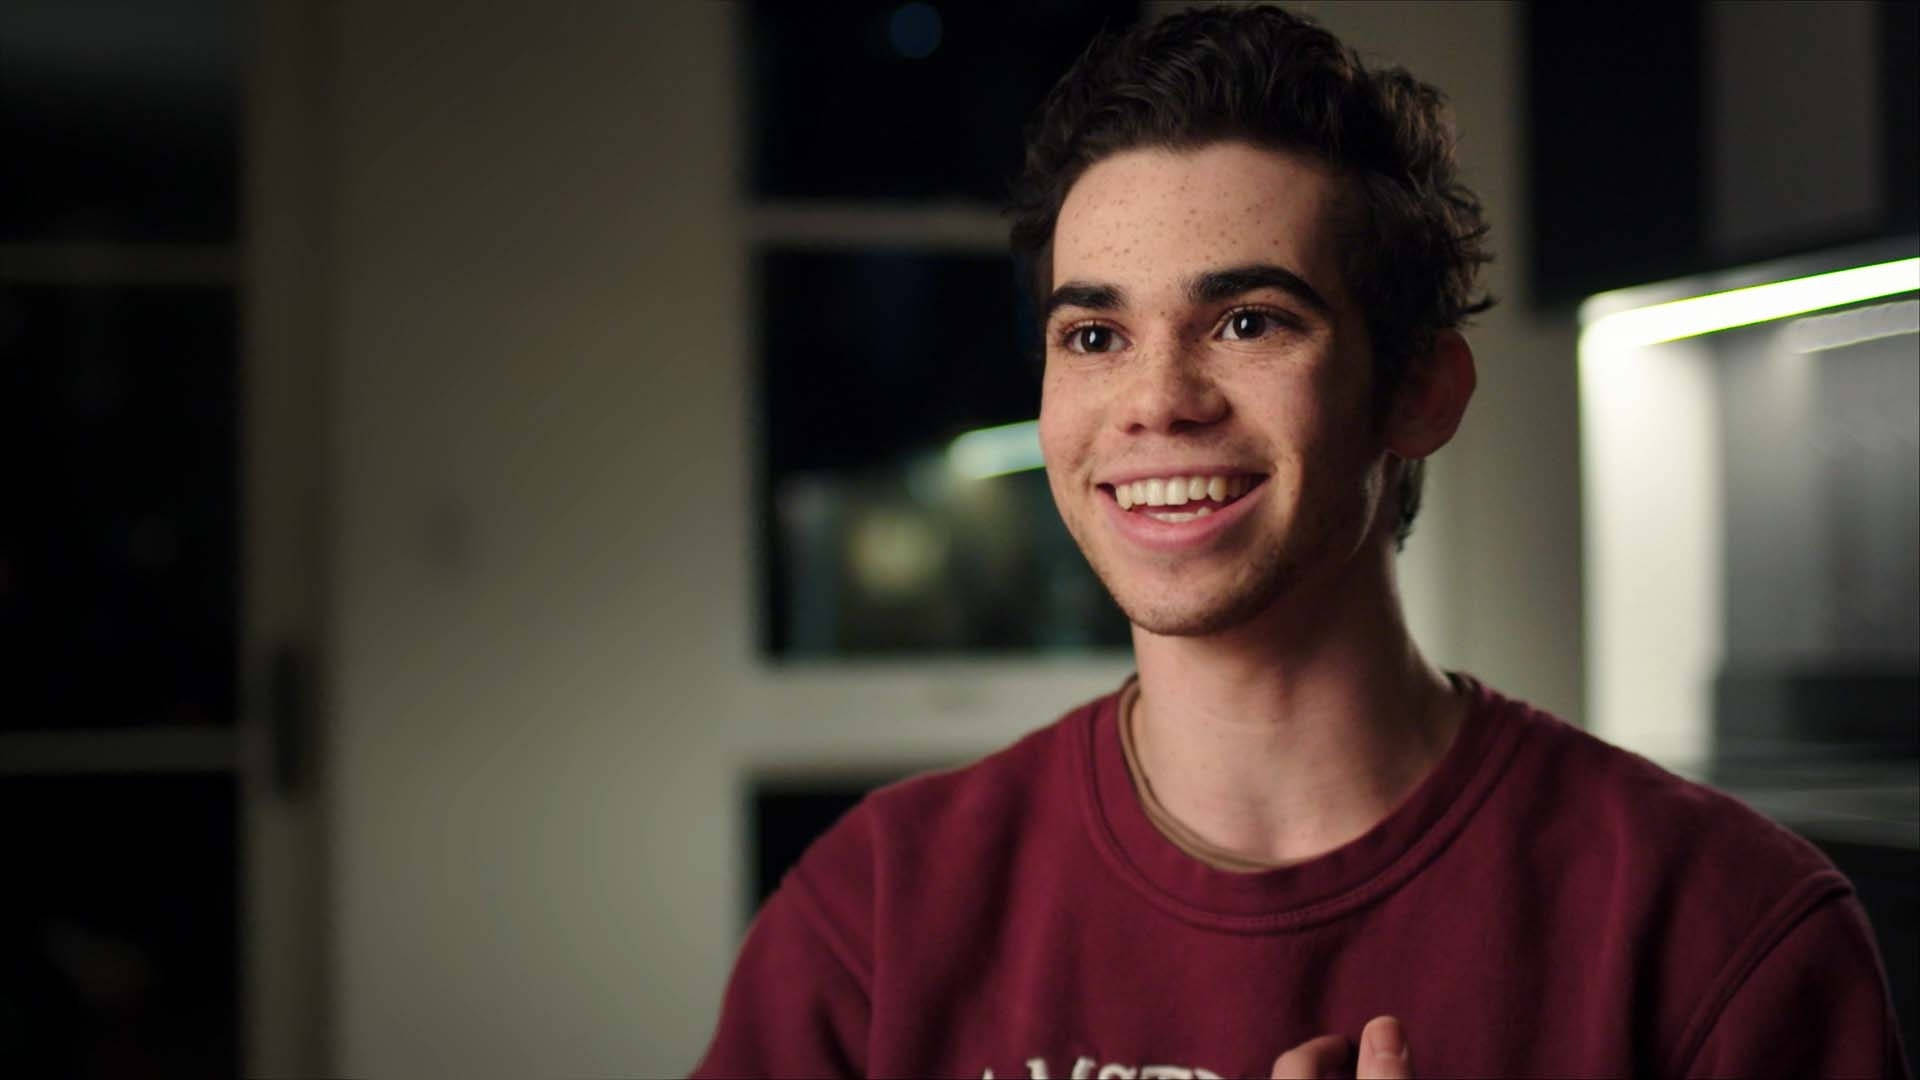 Cameron Boyce S Appearance In Showbiz Kids Honors His Legacy